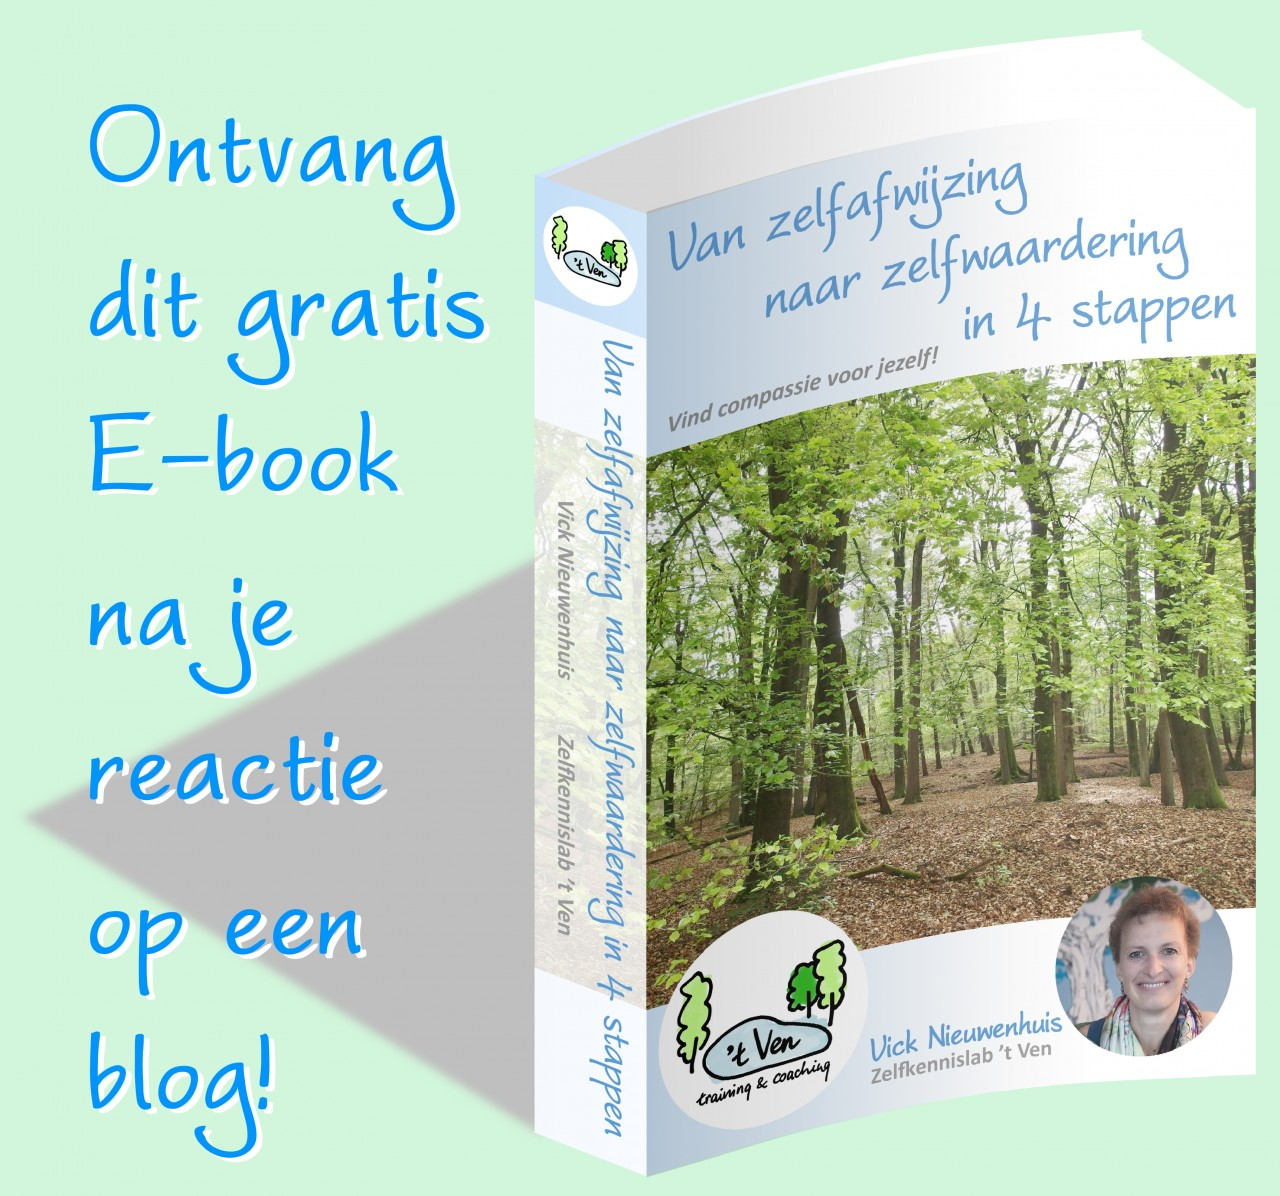 ZelfkennisLab - blog - E-book